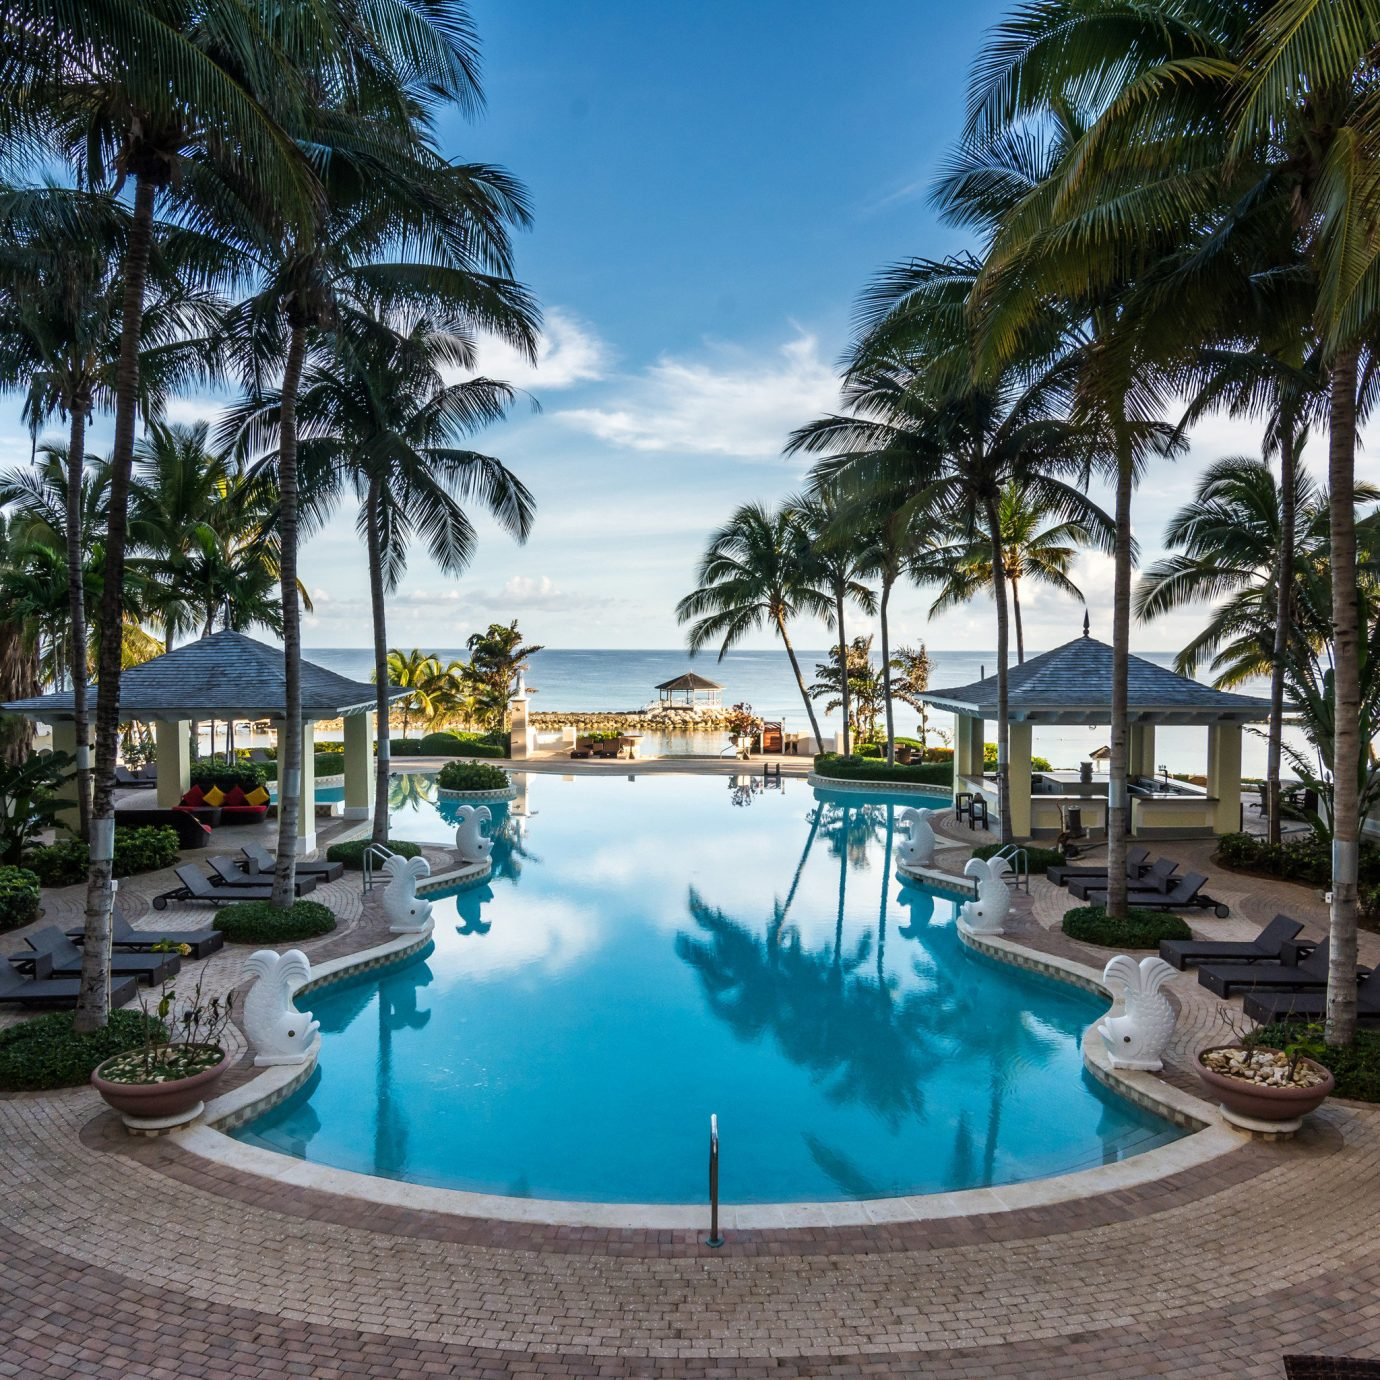 All-Inclusive Resorts Family Travel Hotels Resort property swimming pool palm tree estate leisure arecales real estate condominium home resort town vacation hotel tree tropics Villa water caribbean